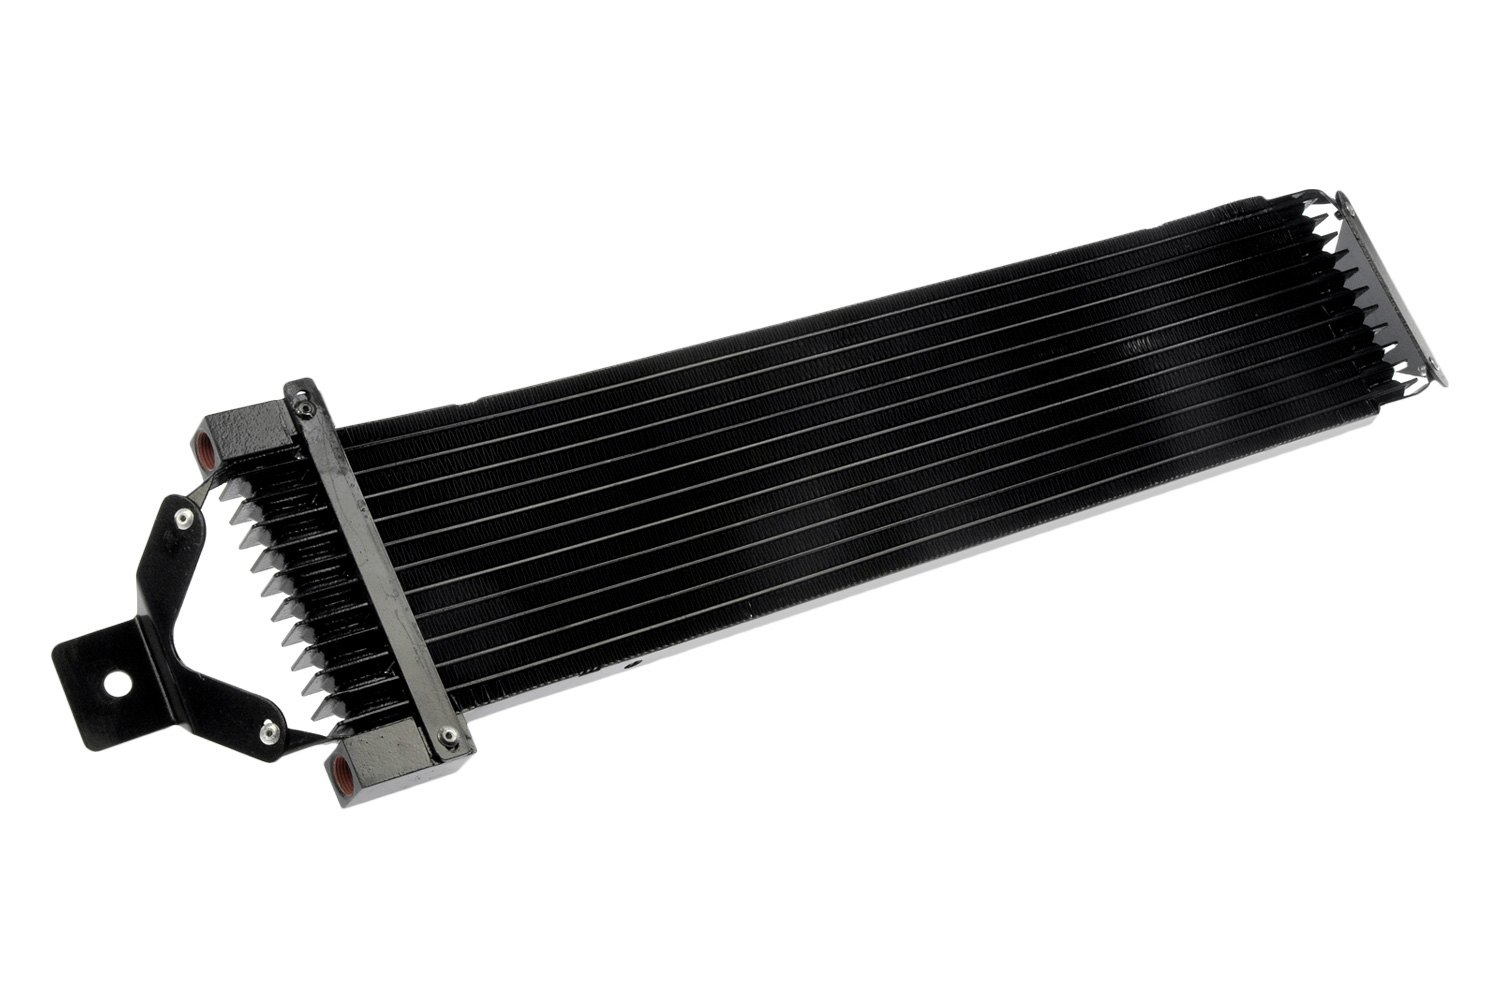 Transmission Fluid Cooler : Dorman dodge durango automatic transmission oil cooler